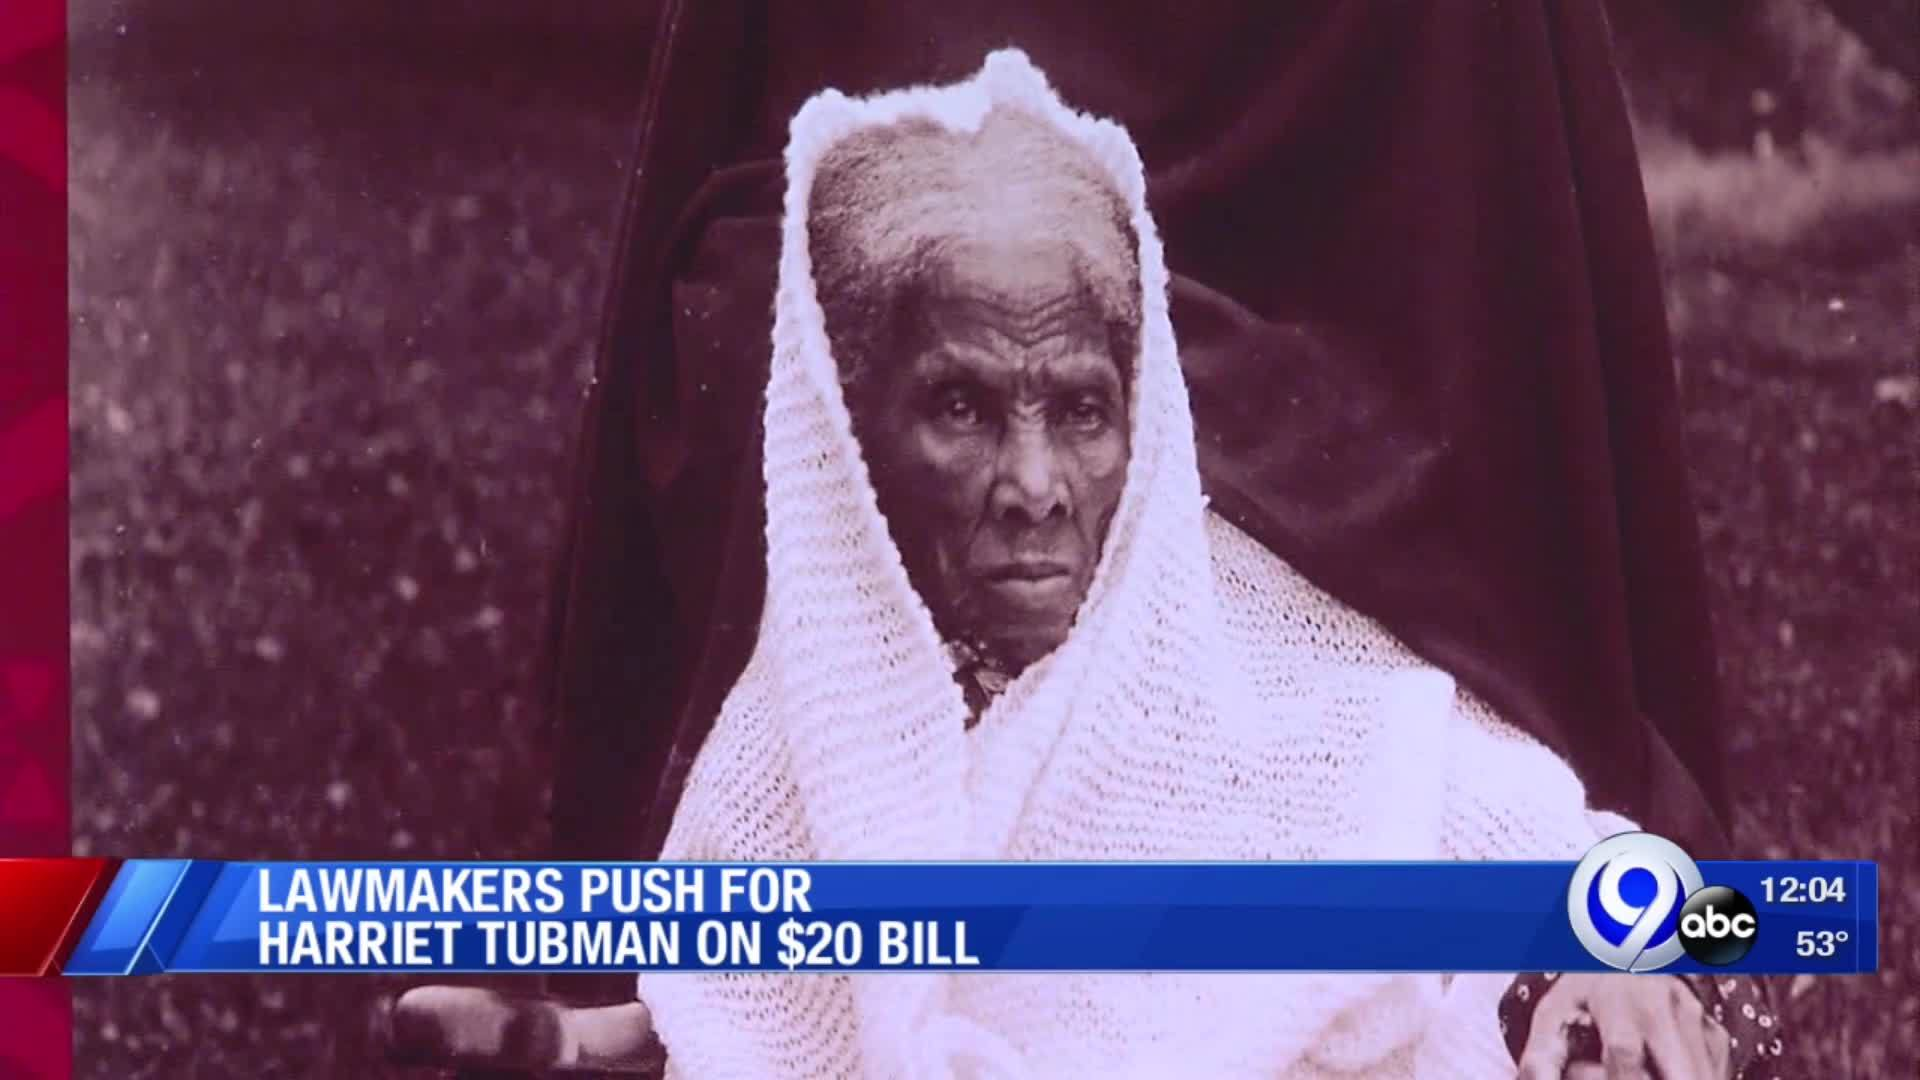 Lawmakers_pushing_for_Harriet_Tubman_on__4_20190507162453